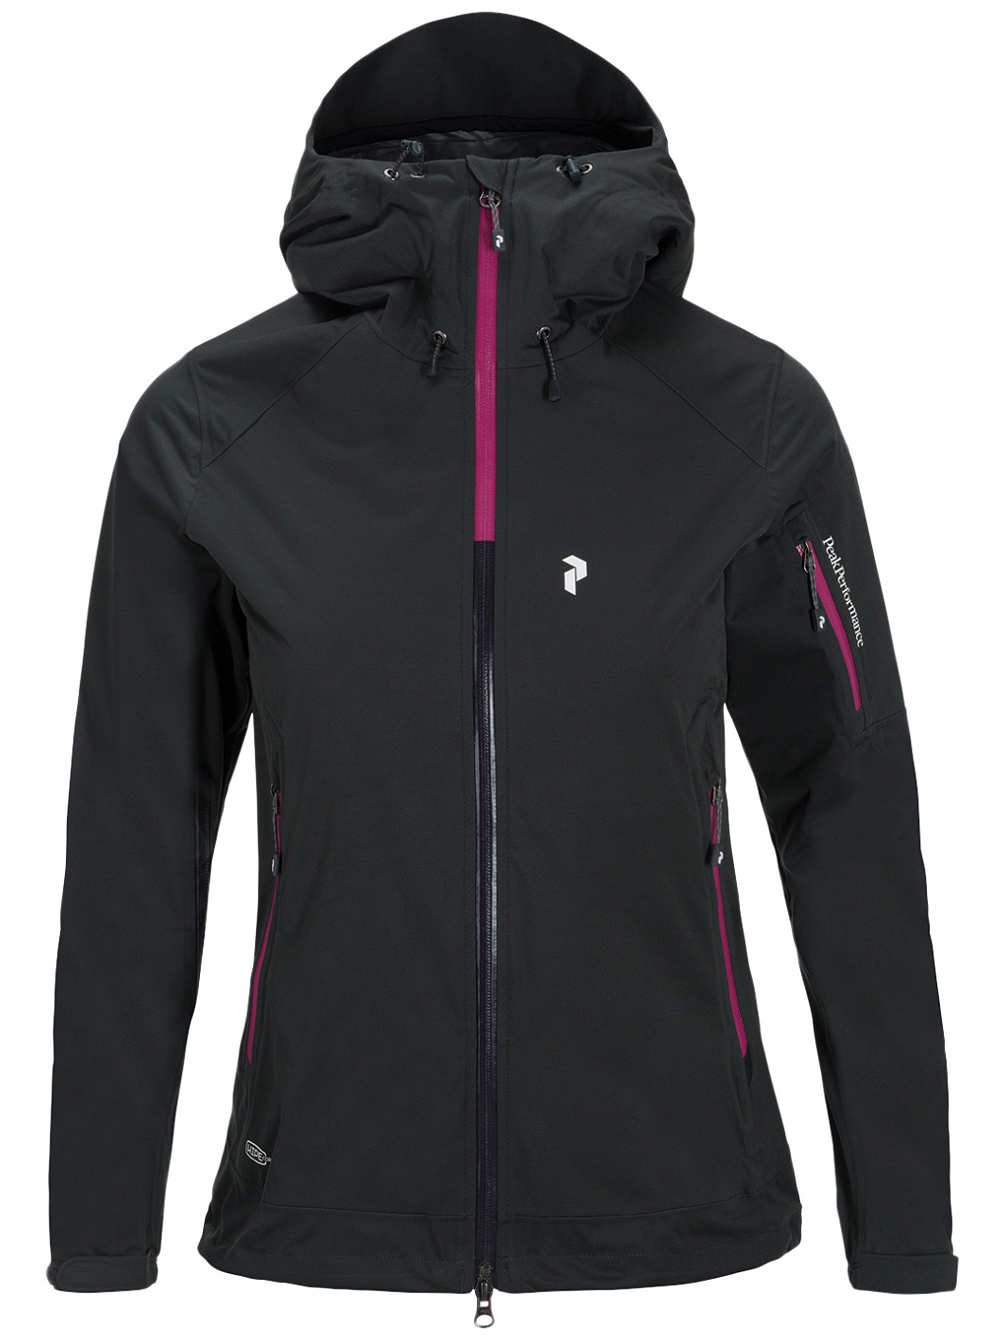 Damen Snowboard Jacke Peak Performance Shield Jacket günstig